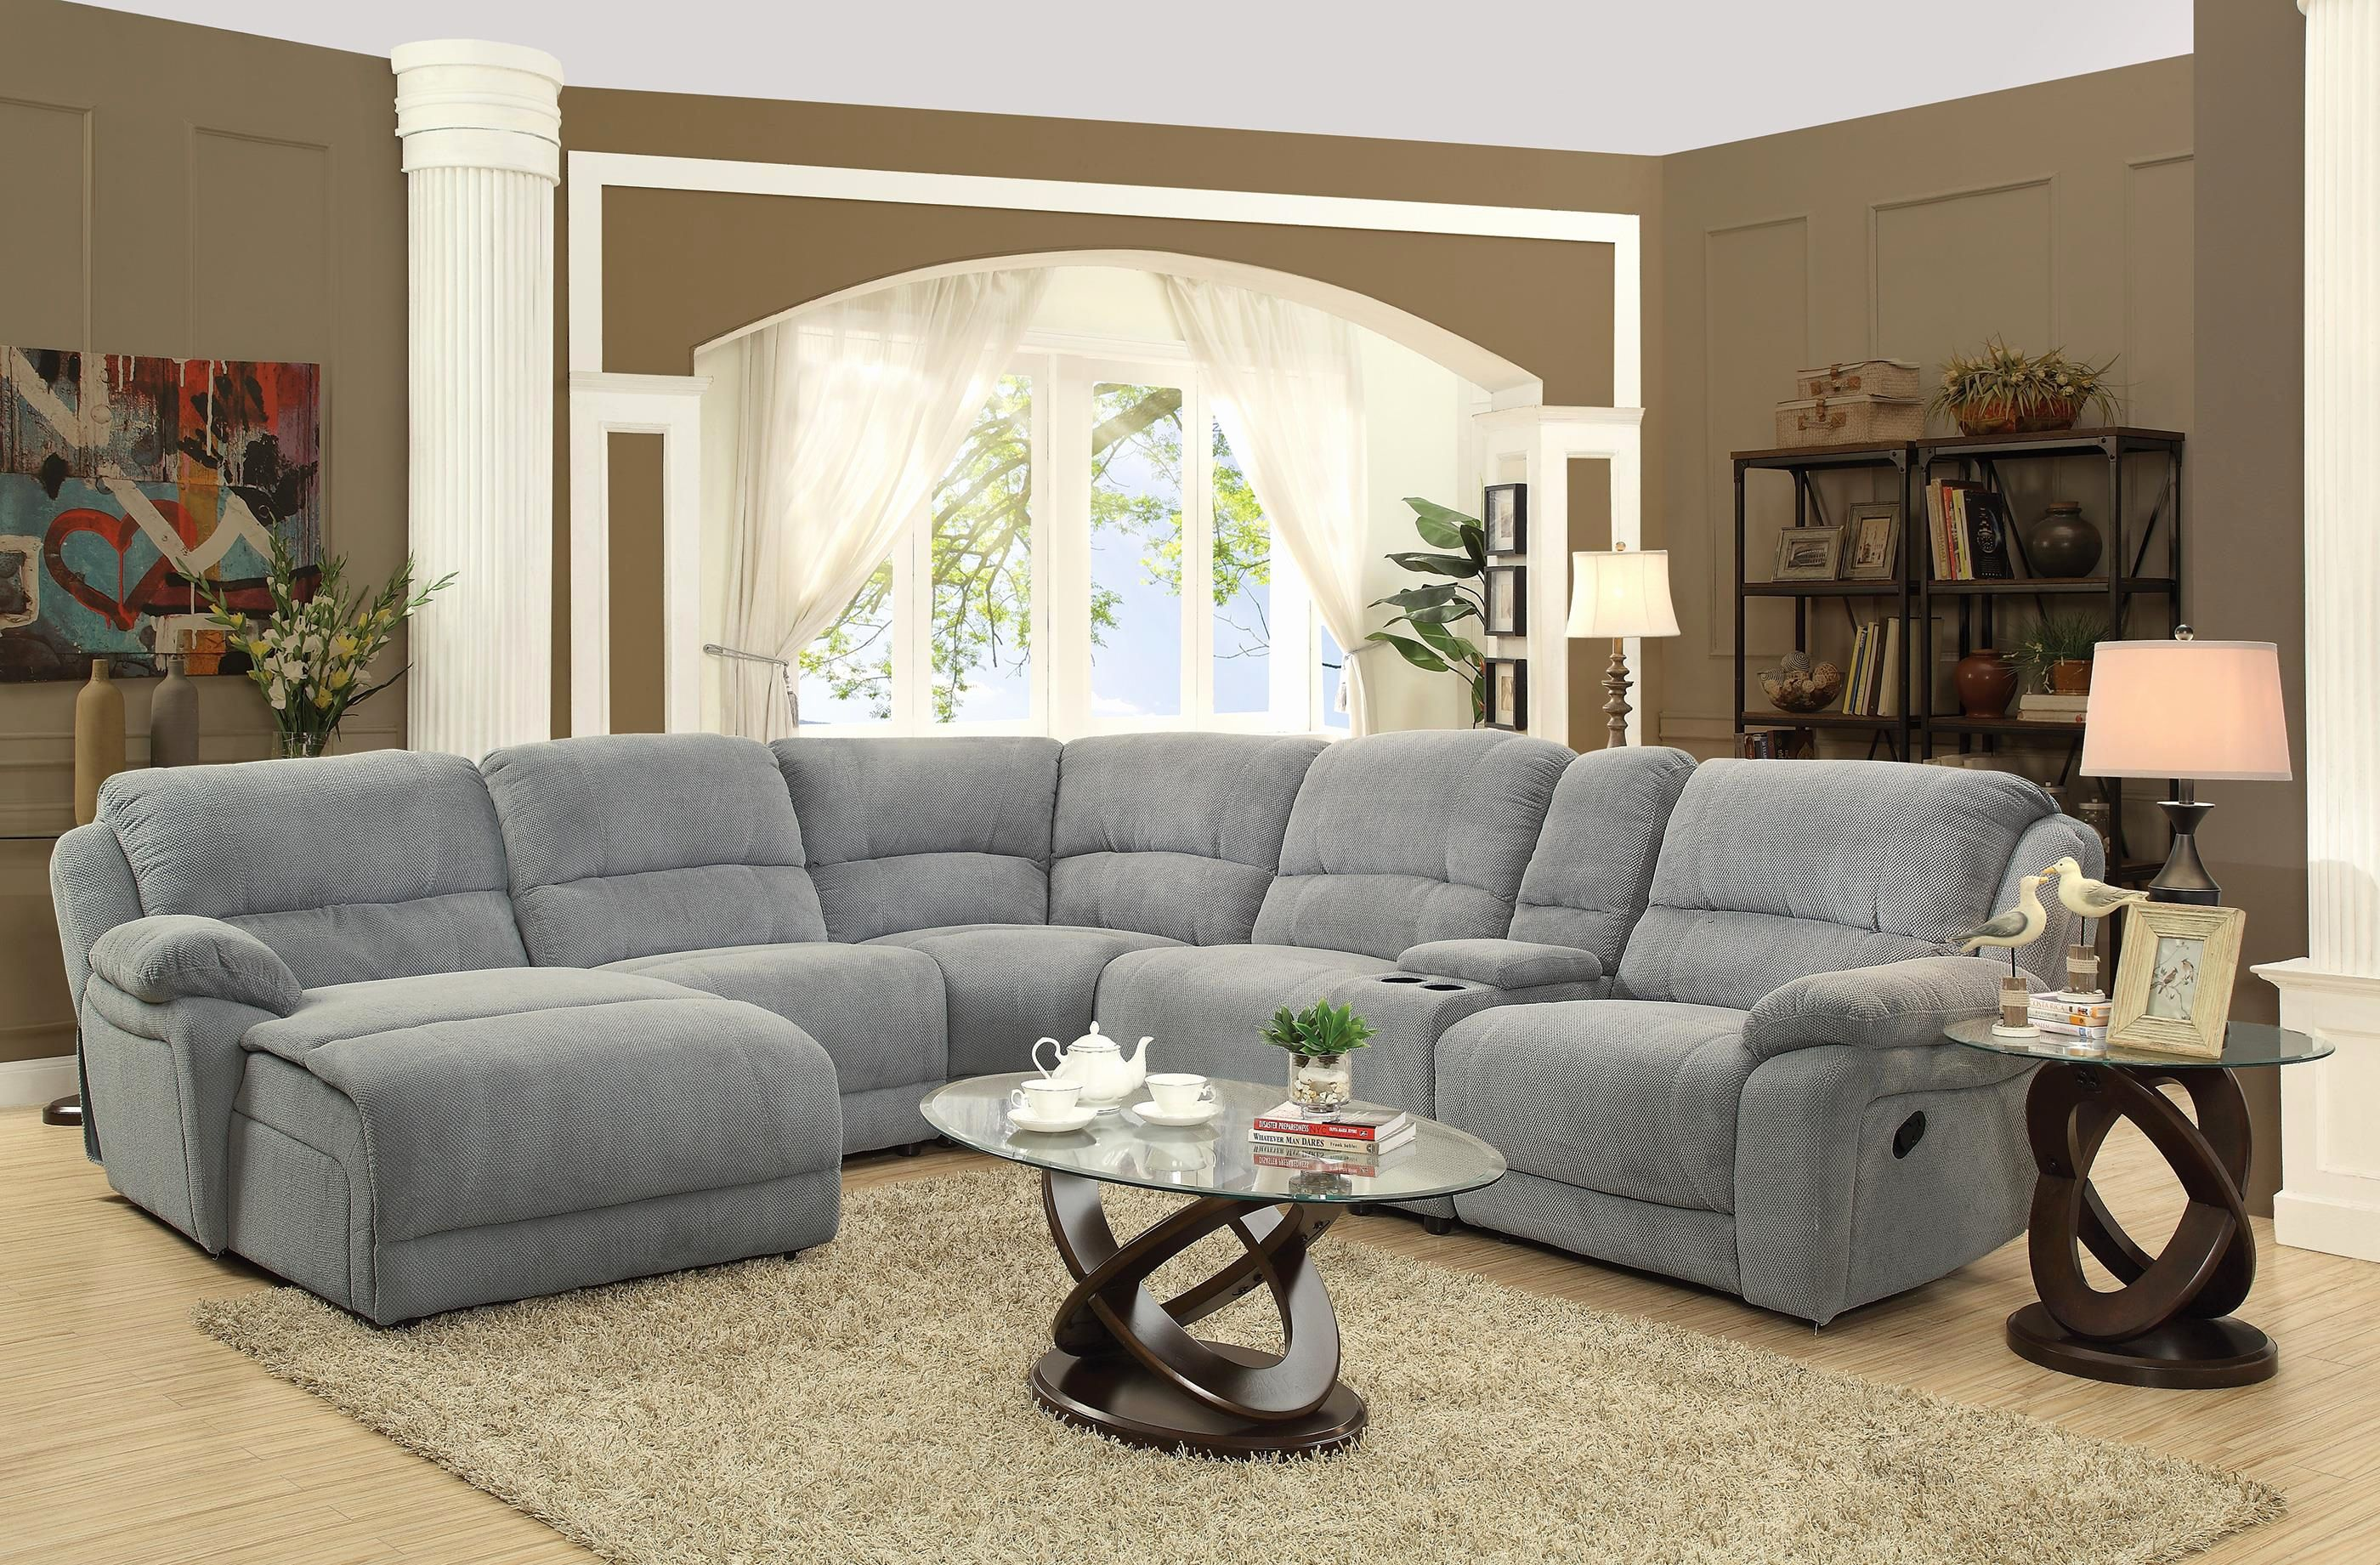 Lovely Cream Microfiber Sectional Sofa Cream Microfiber Sectional